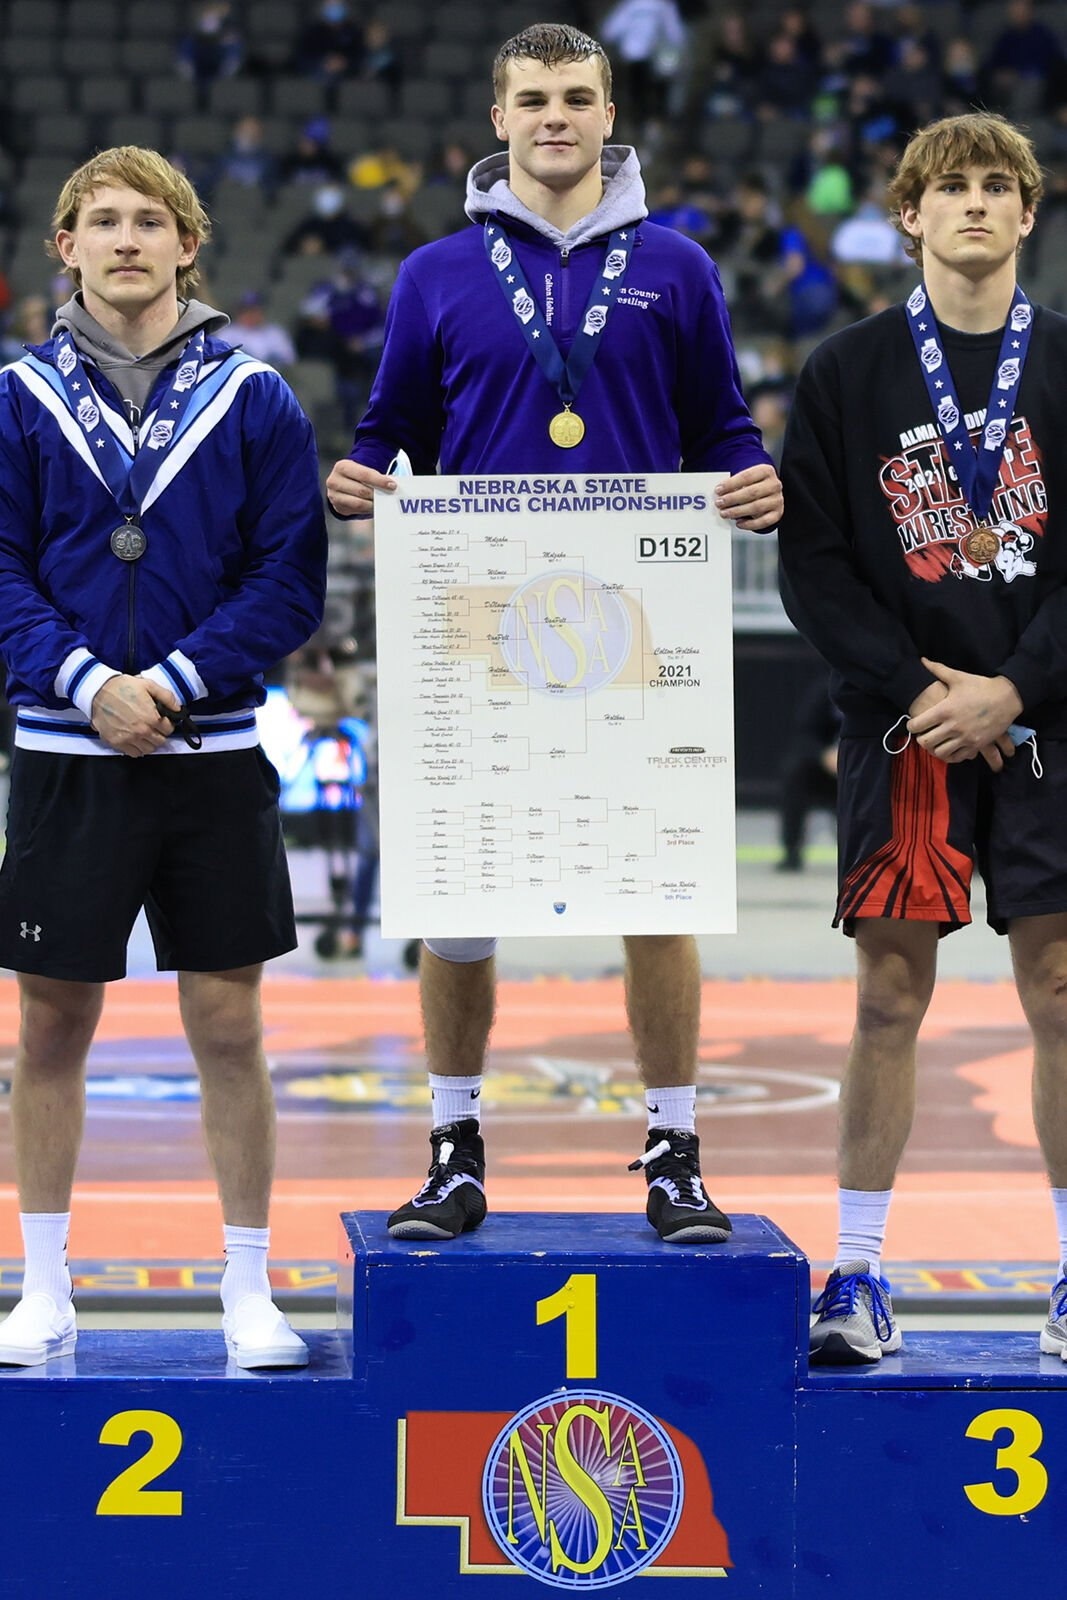 Garden County's Colton Holthus repeats as state champion